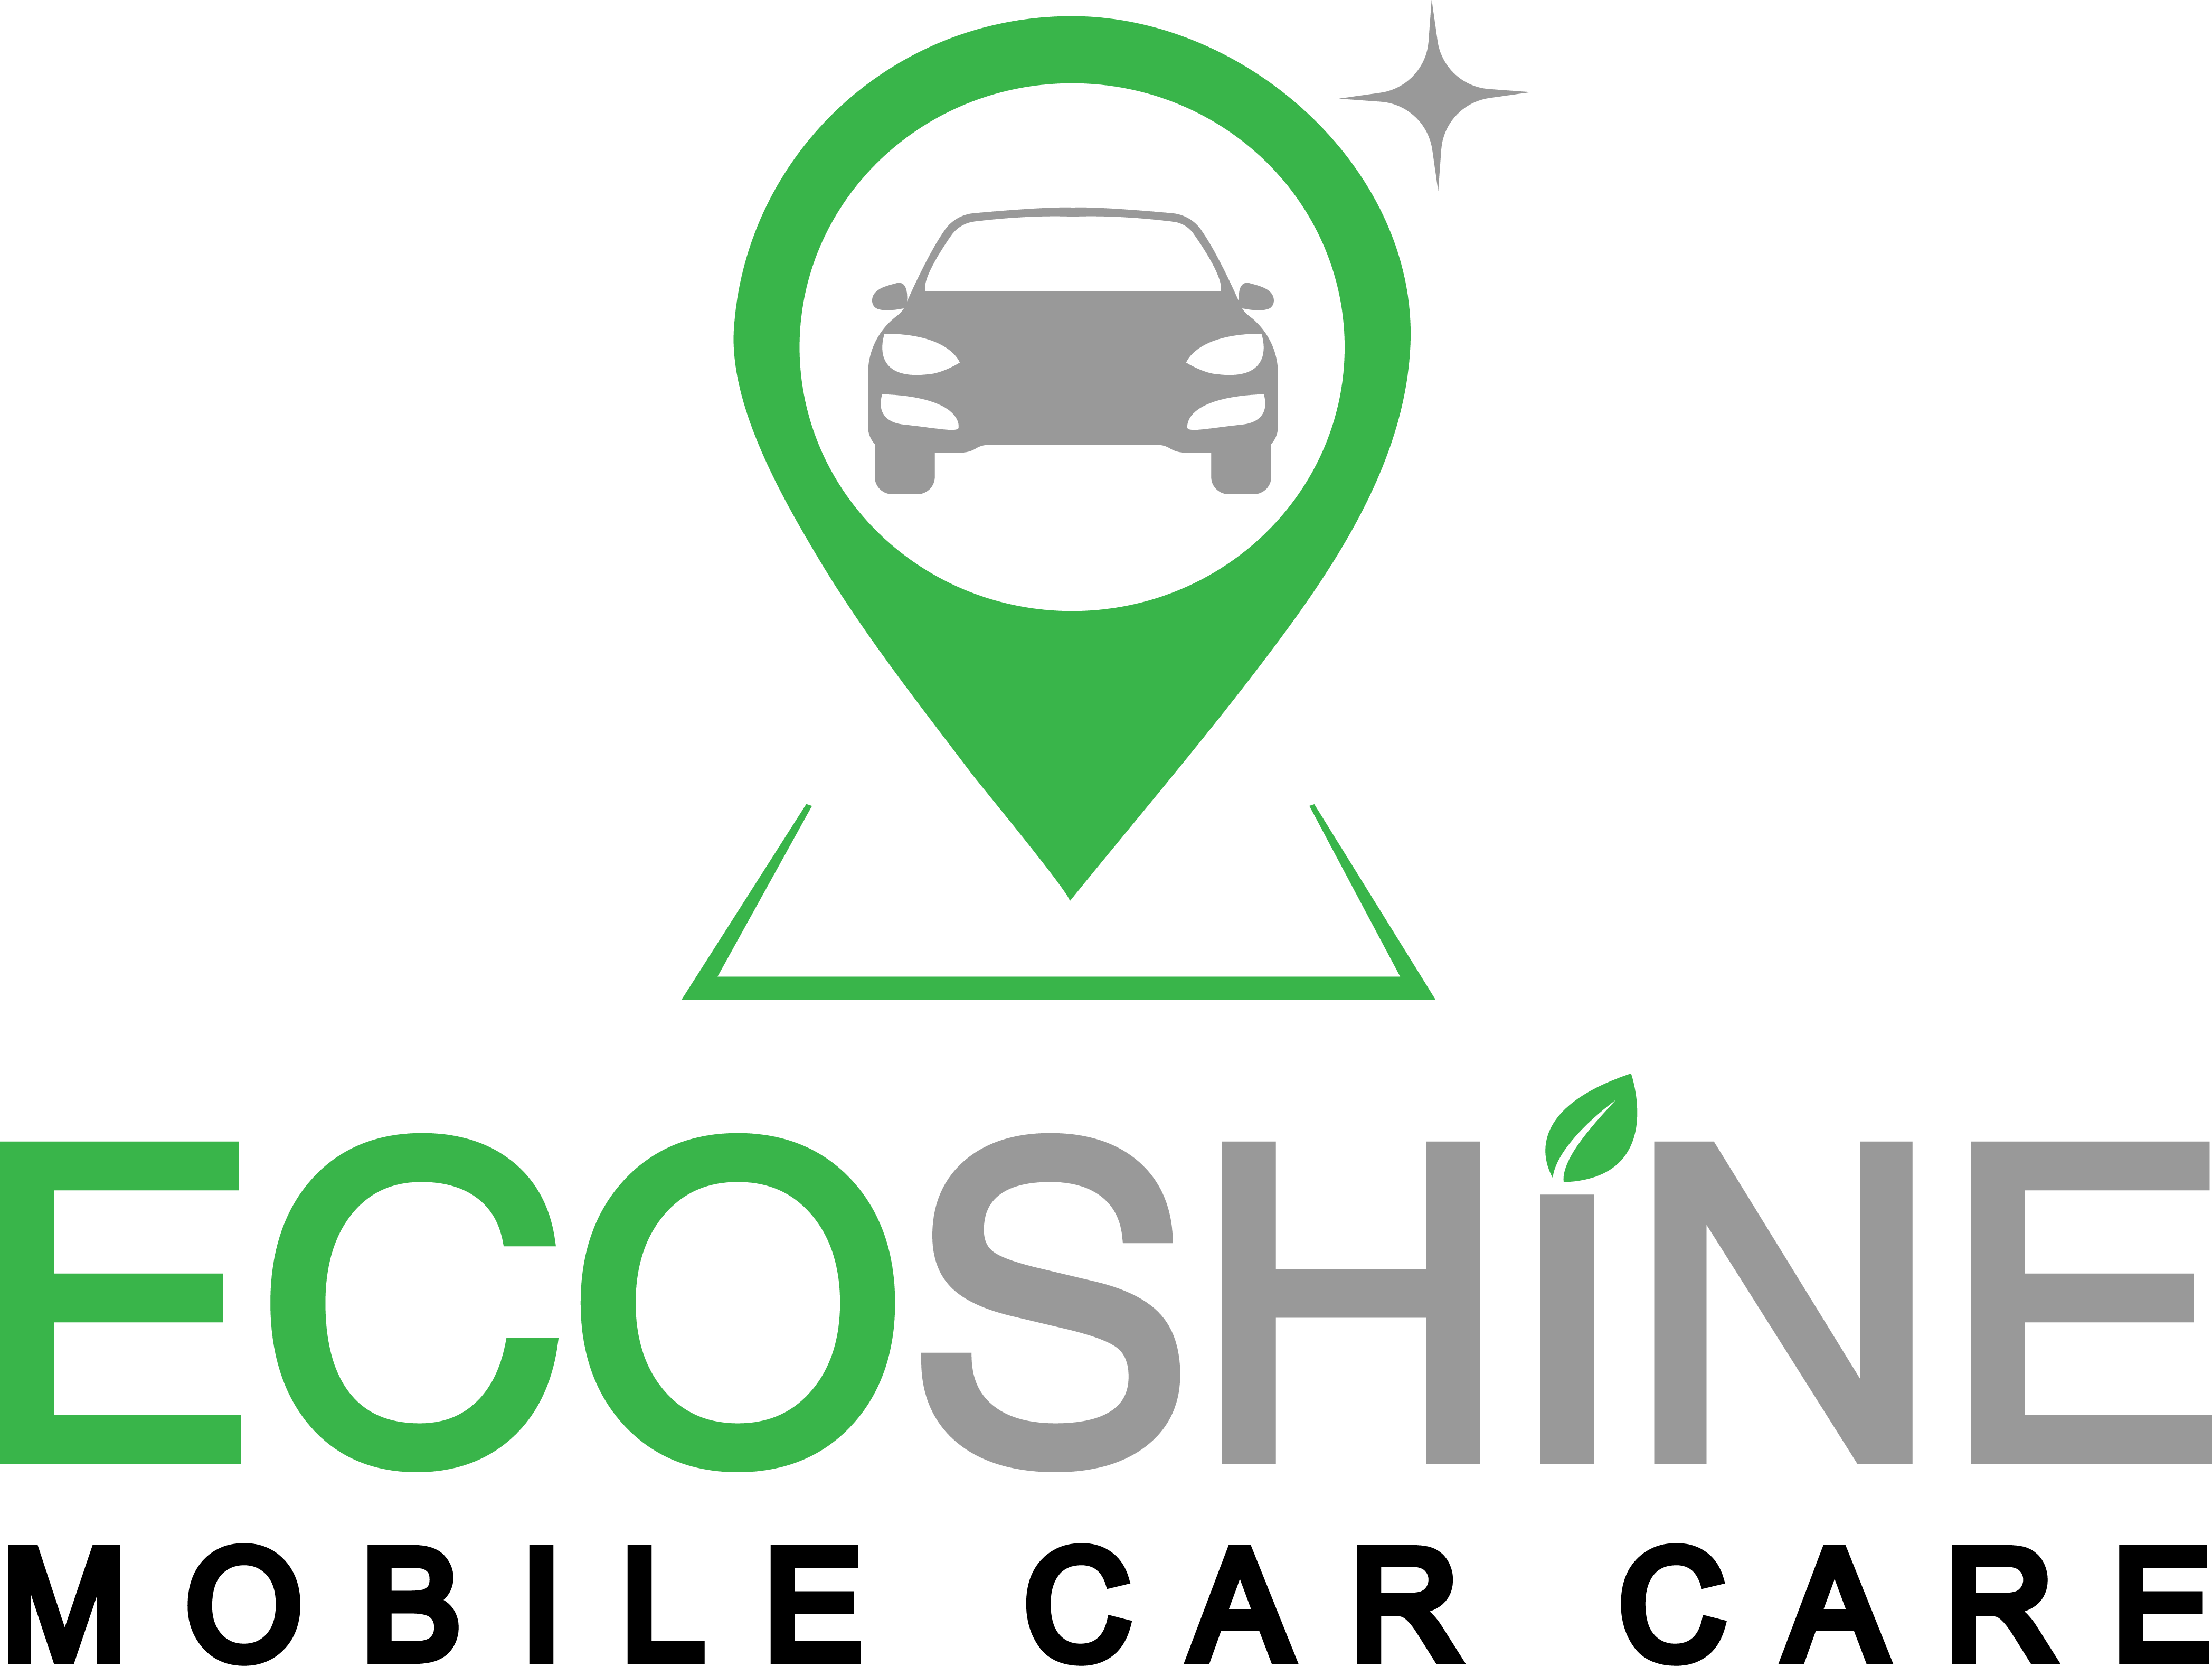 Ecoshine_Colored_PNG_transparent_background_.png